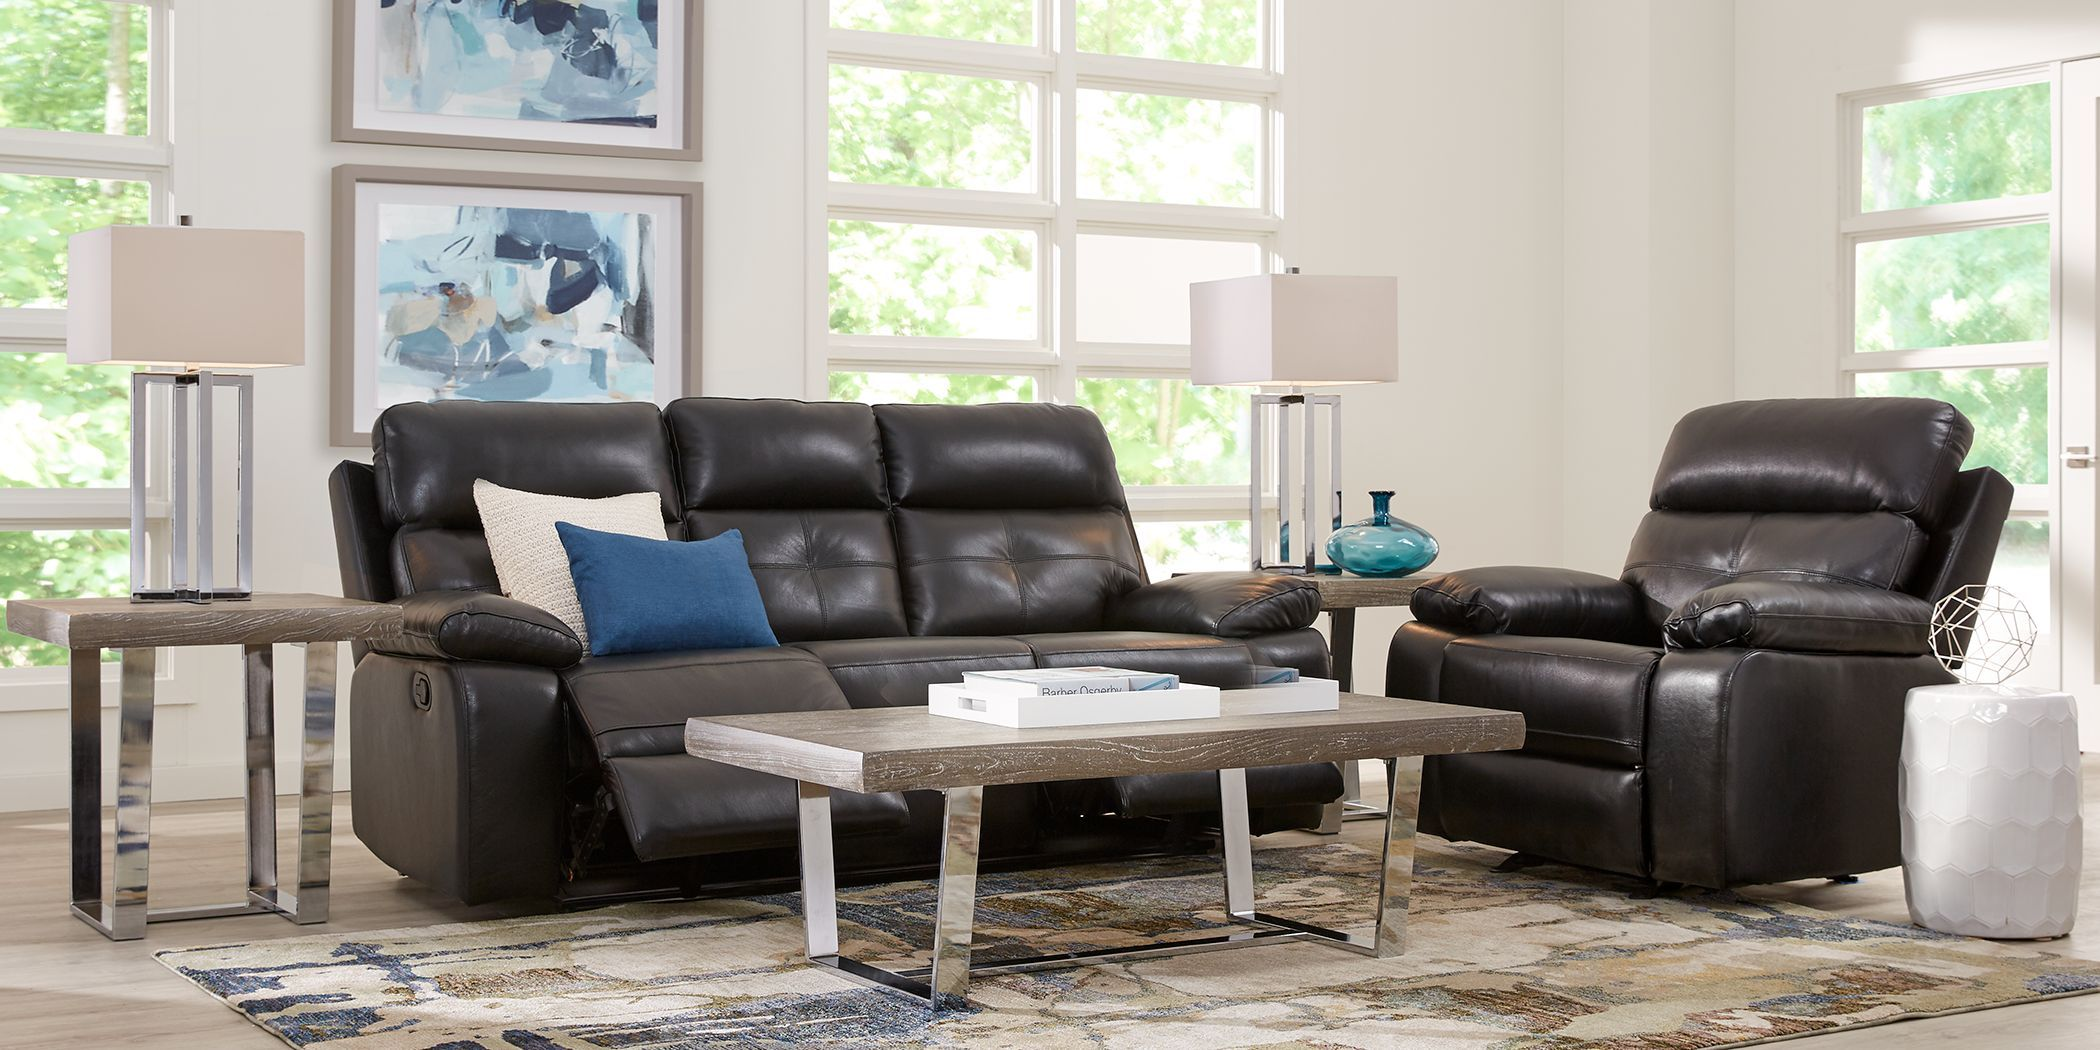 Cepano Black Leather 2 Pc Living Room With Reclining Sofa Living Room Sets Furniture Furniture Leather Living Room Set